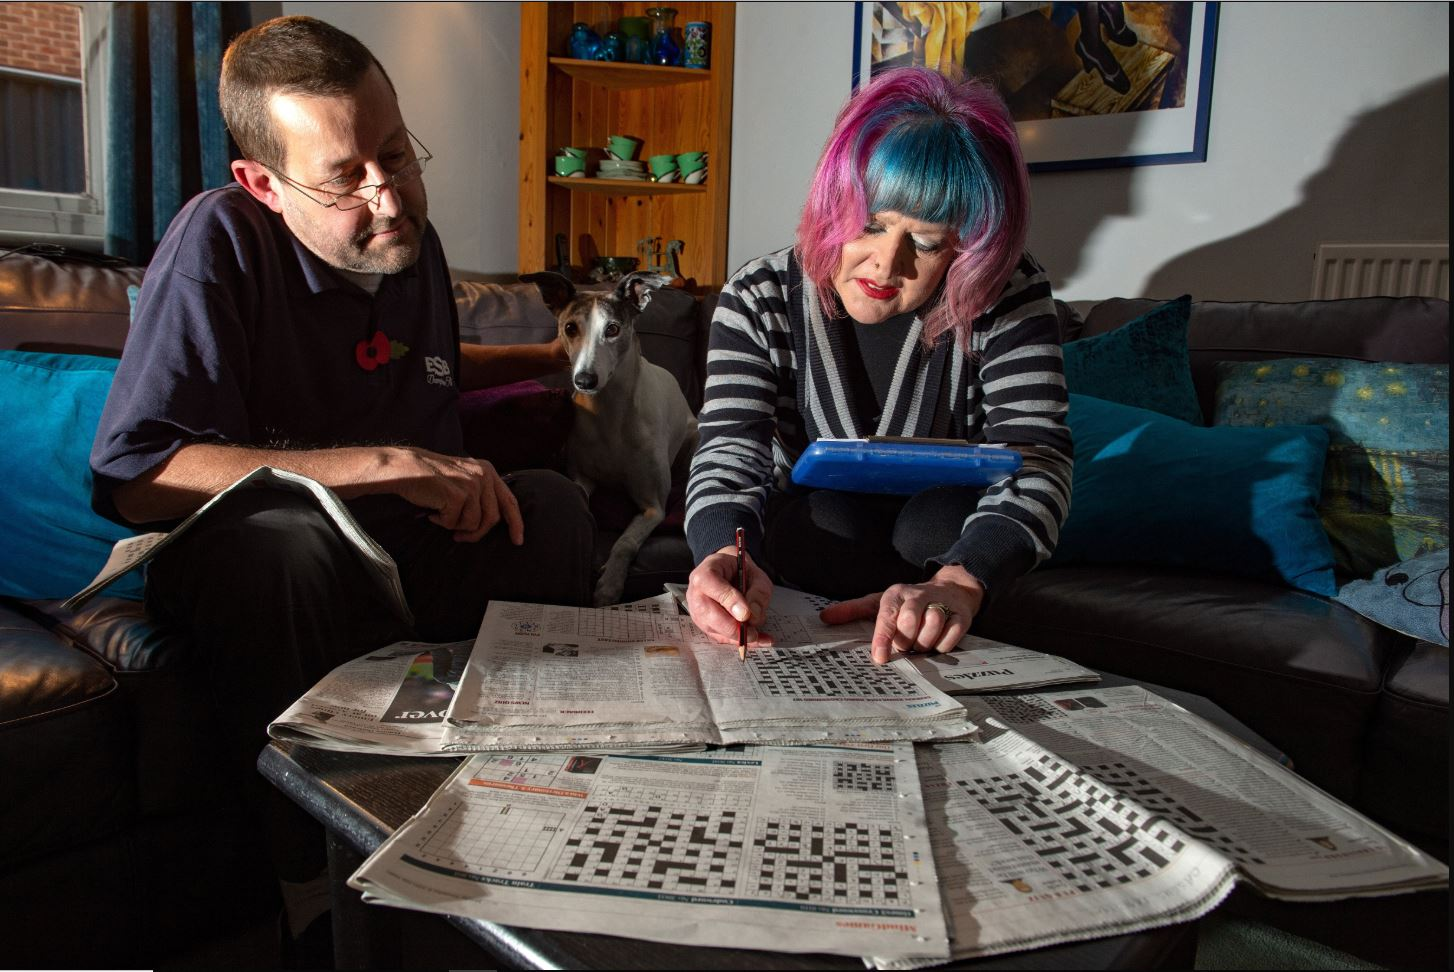 Ingenuity Solvability And Mischievousness I S Crossword King On Secret To The Perfect Clue And Why He Set His Wife A Puzzle For Their Wedding Day